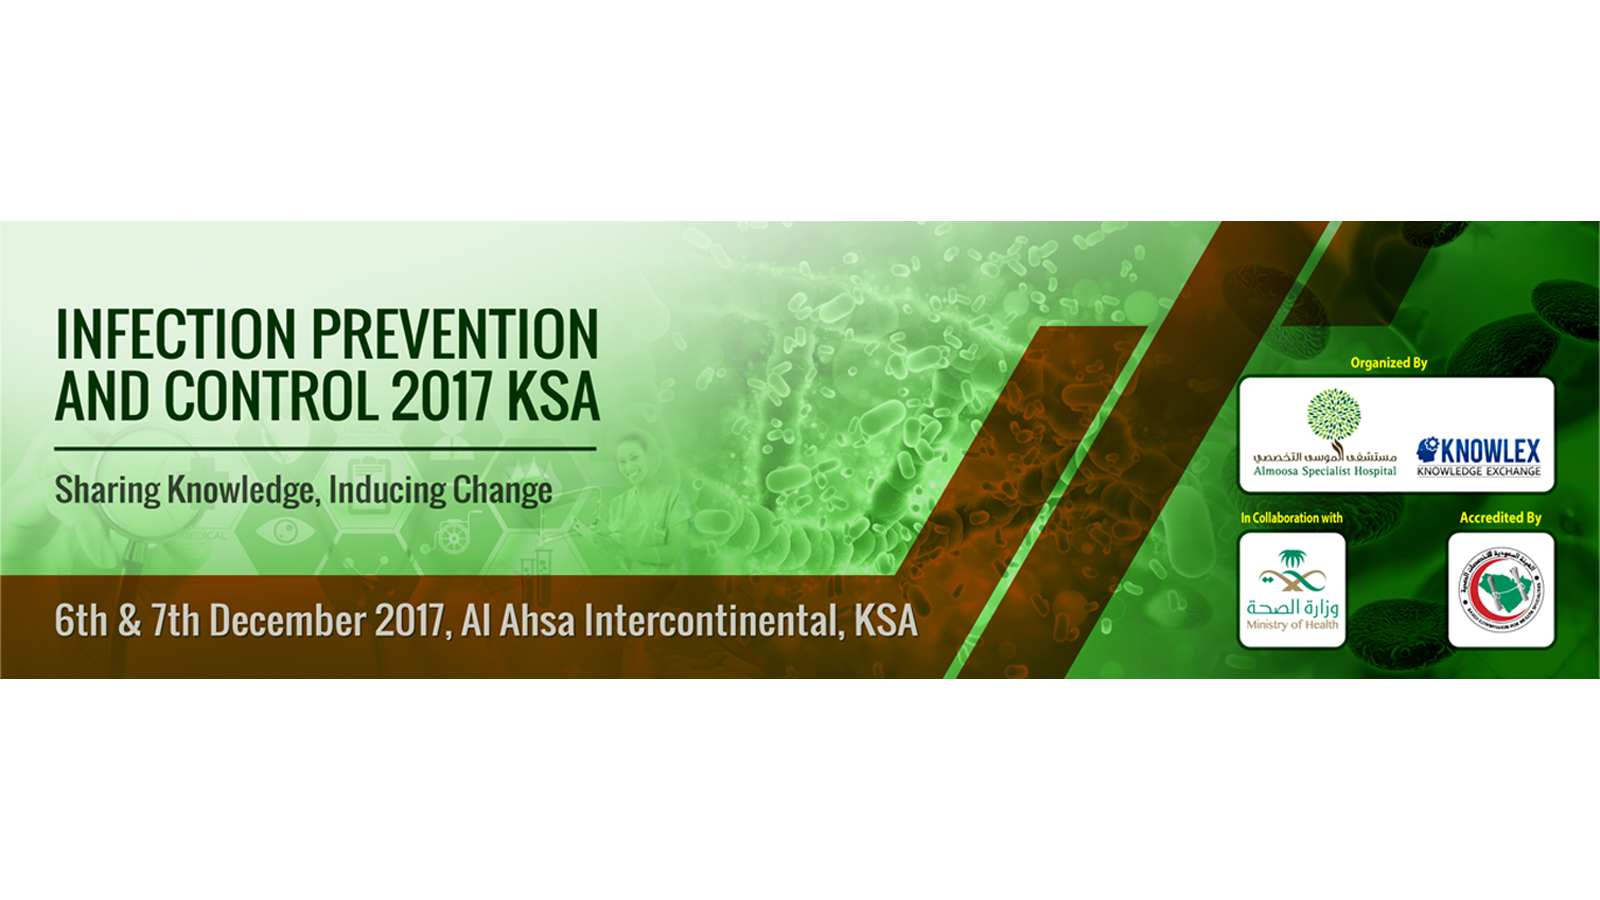 Infection Prevention and Control KSA 2017